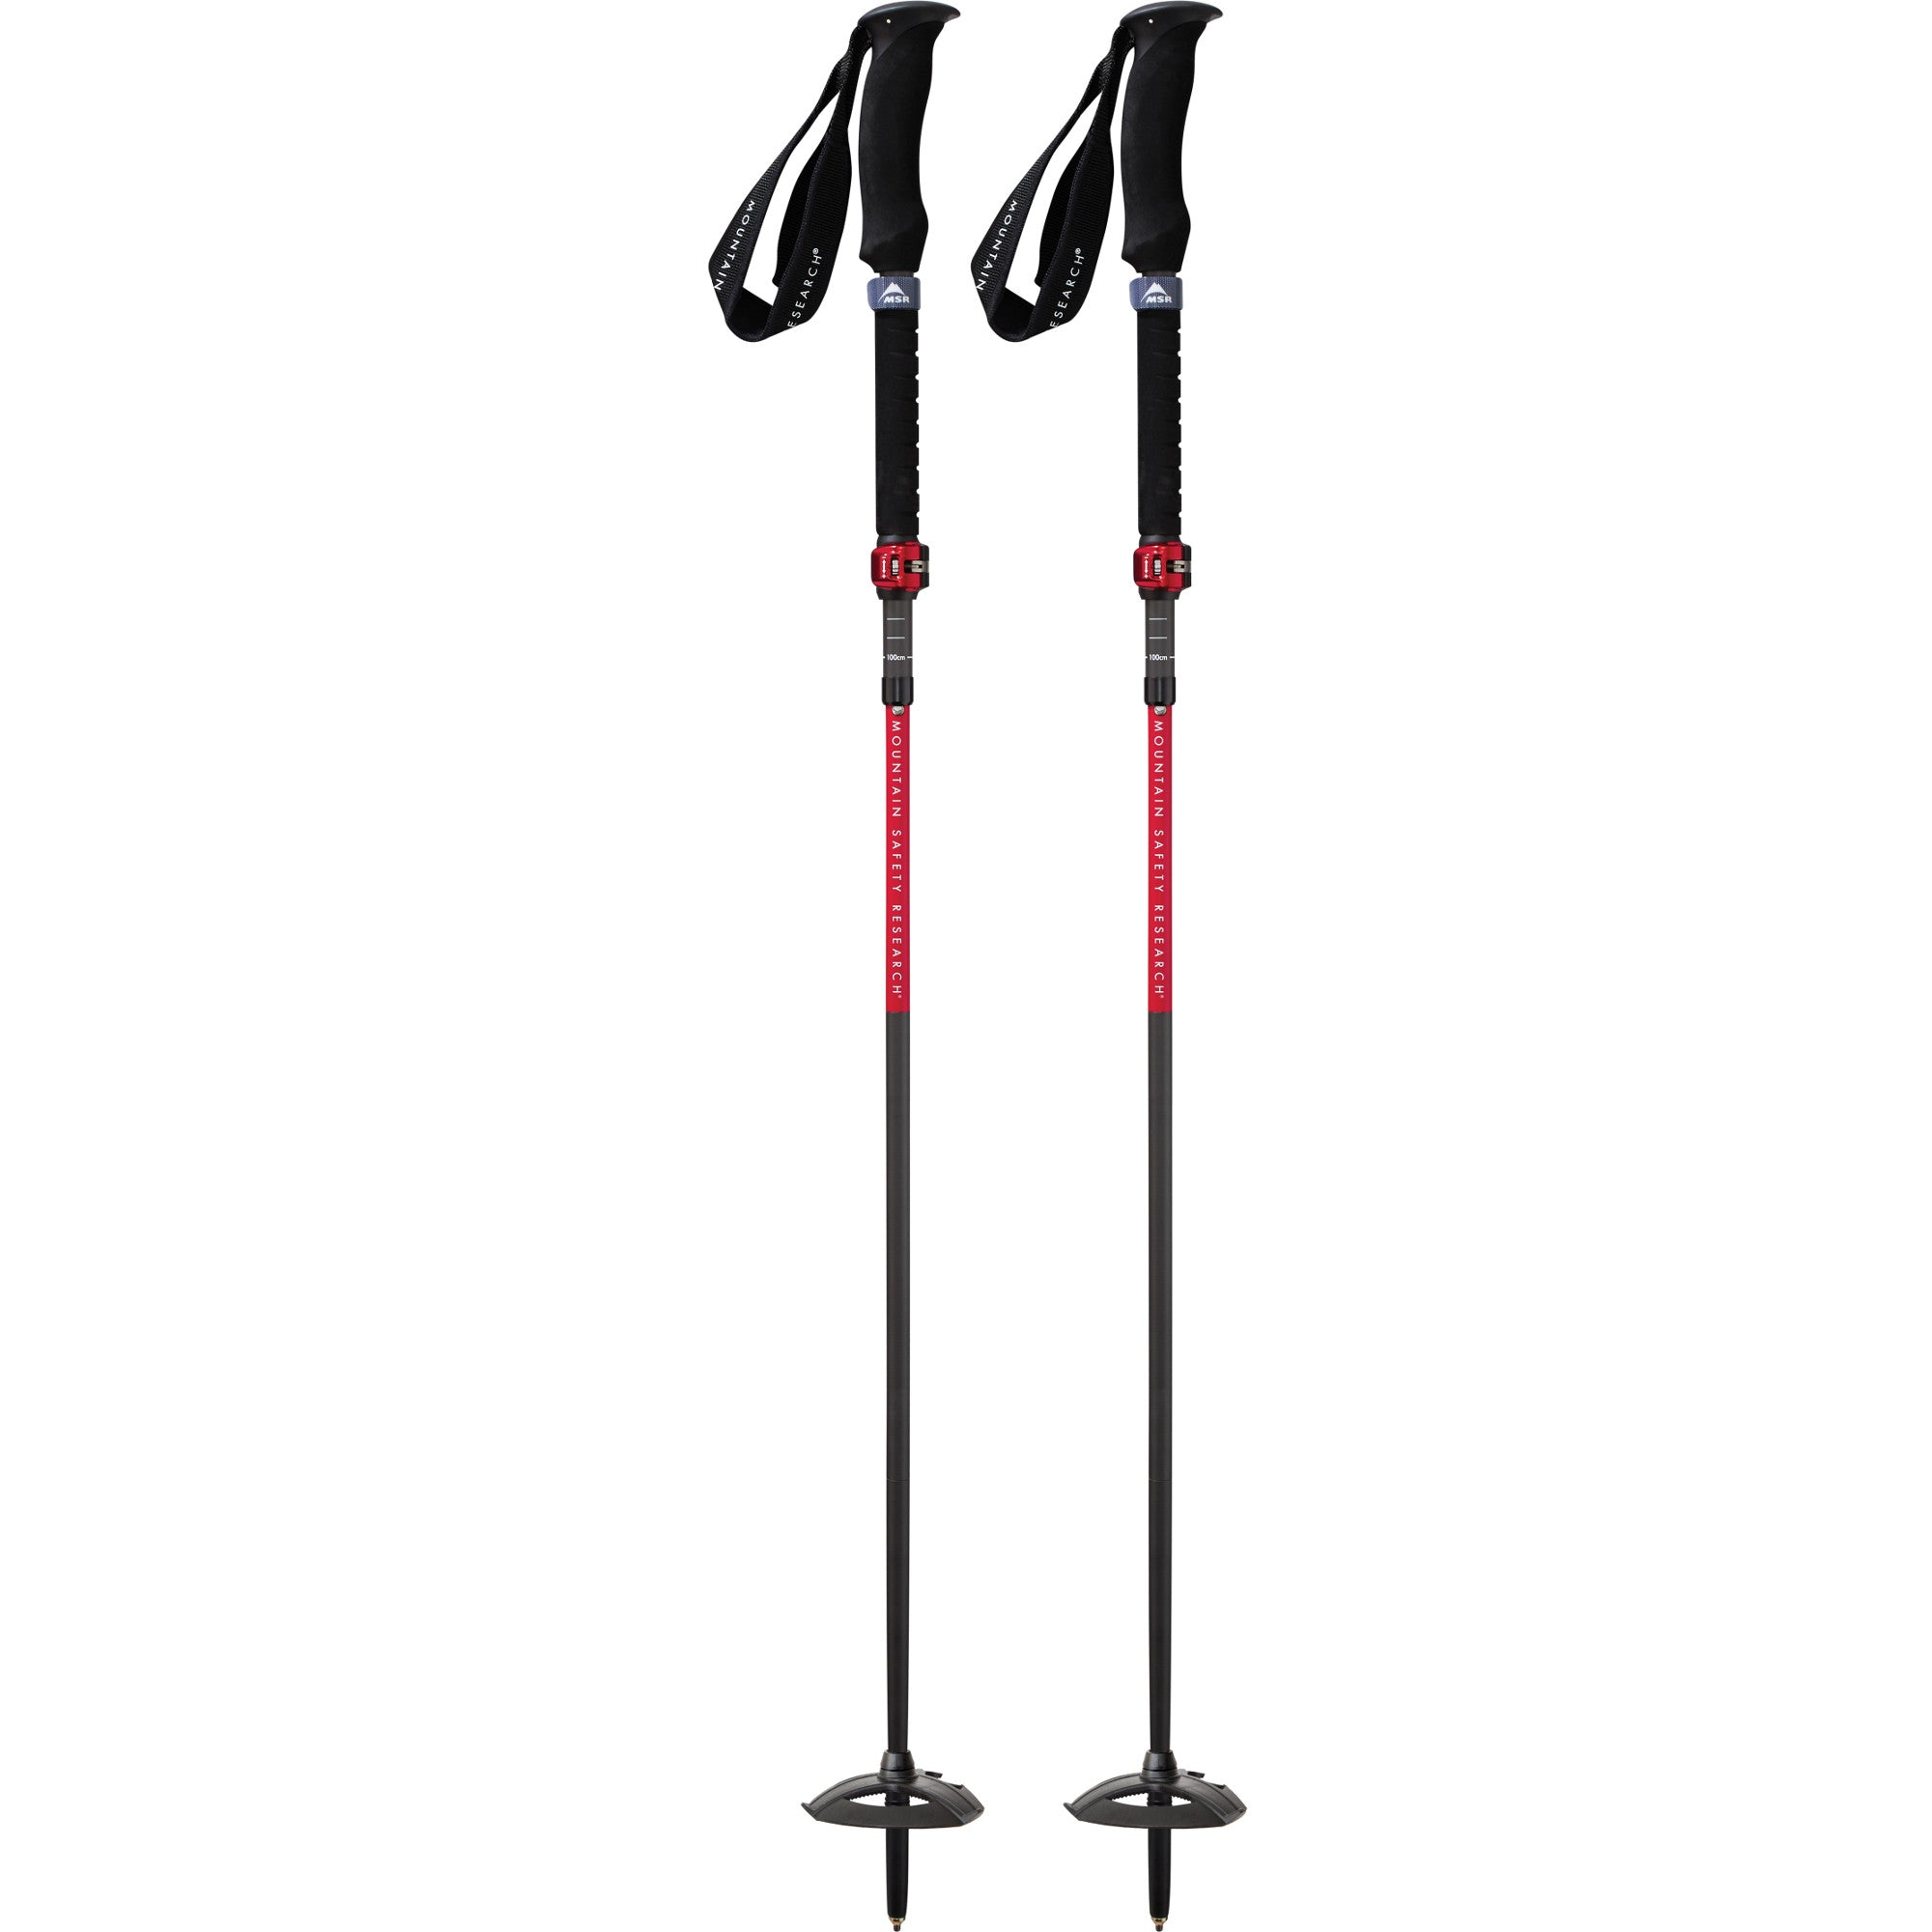 Pair of MSR Dynalock Ascent Carbon mountain poles, in Black/Grey/Red colours